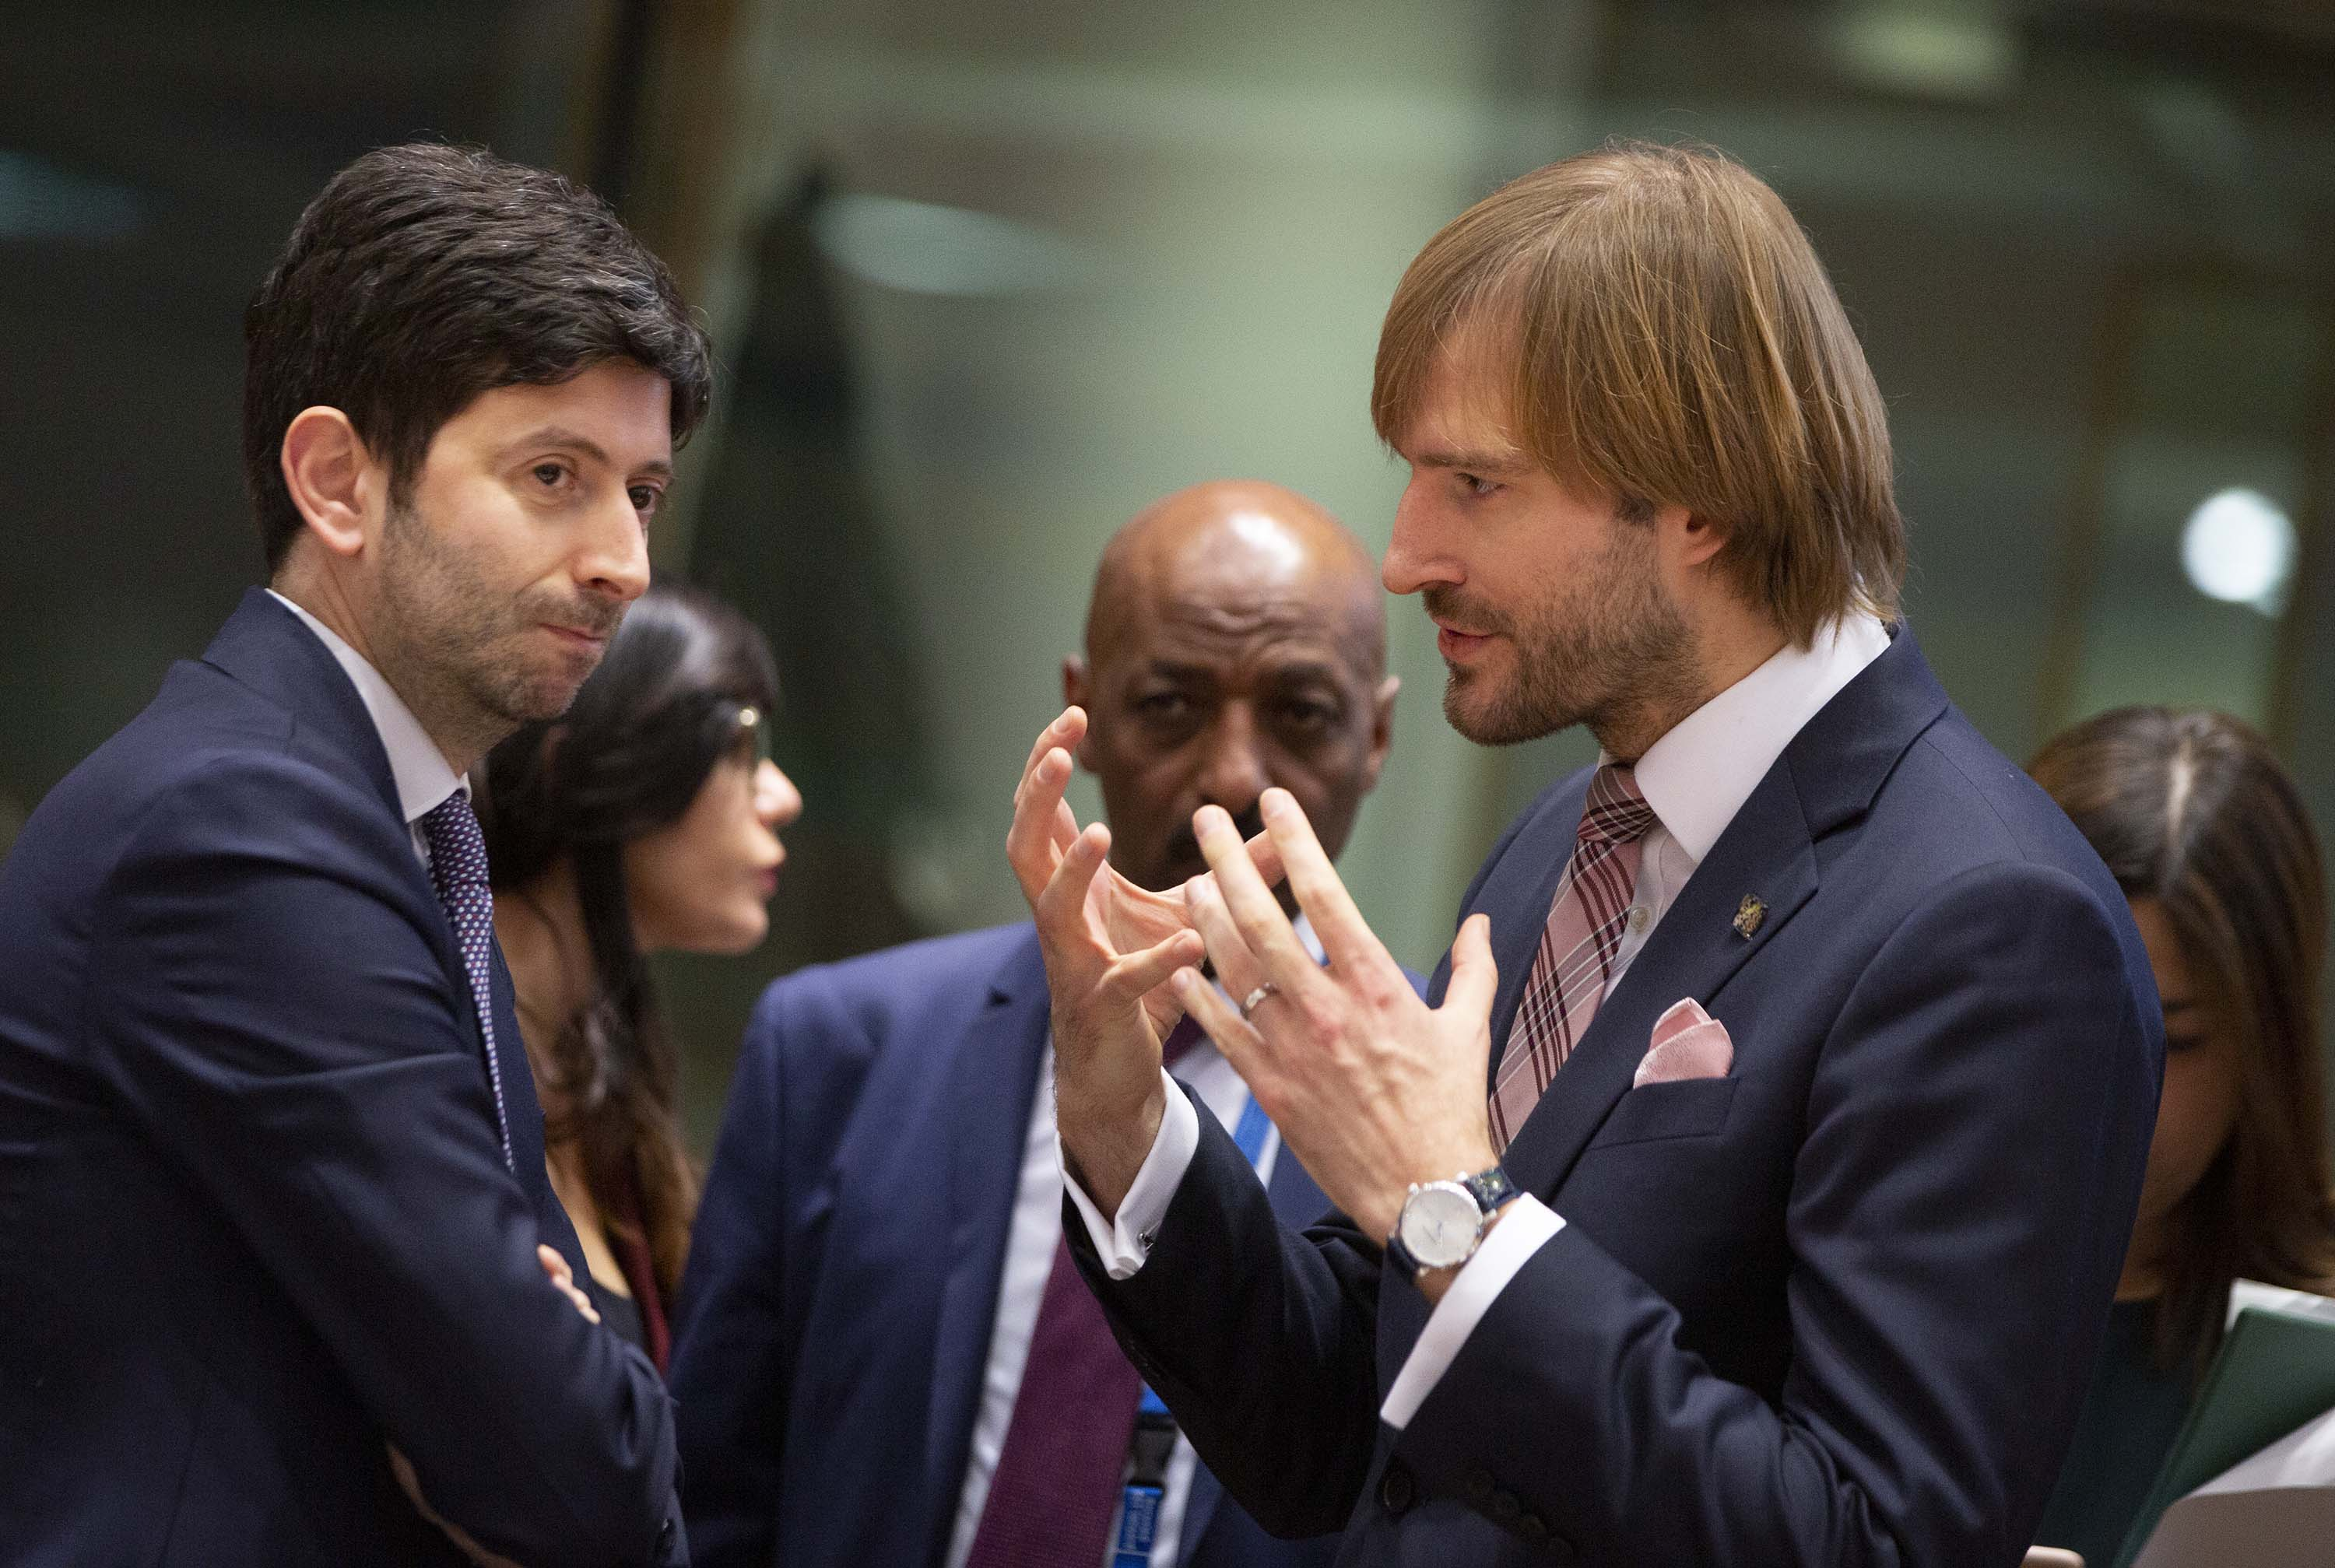 The Czech health minister Adam Vojtěch, right, speaks with Italian health minister Roberto Speranza during an extraordinary meeting of EU health ministers in Brussels, Belgium, on Friday, to discuss the coronavirus outbreak.